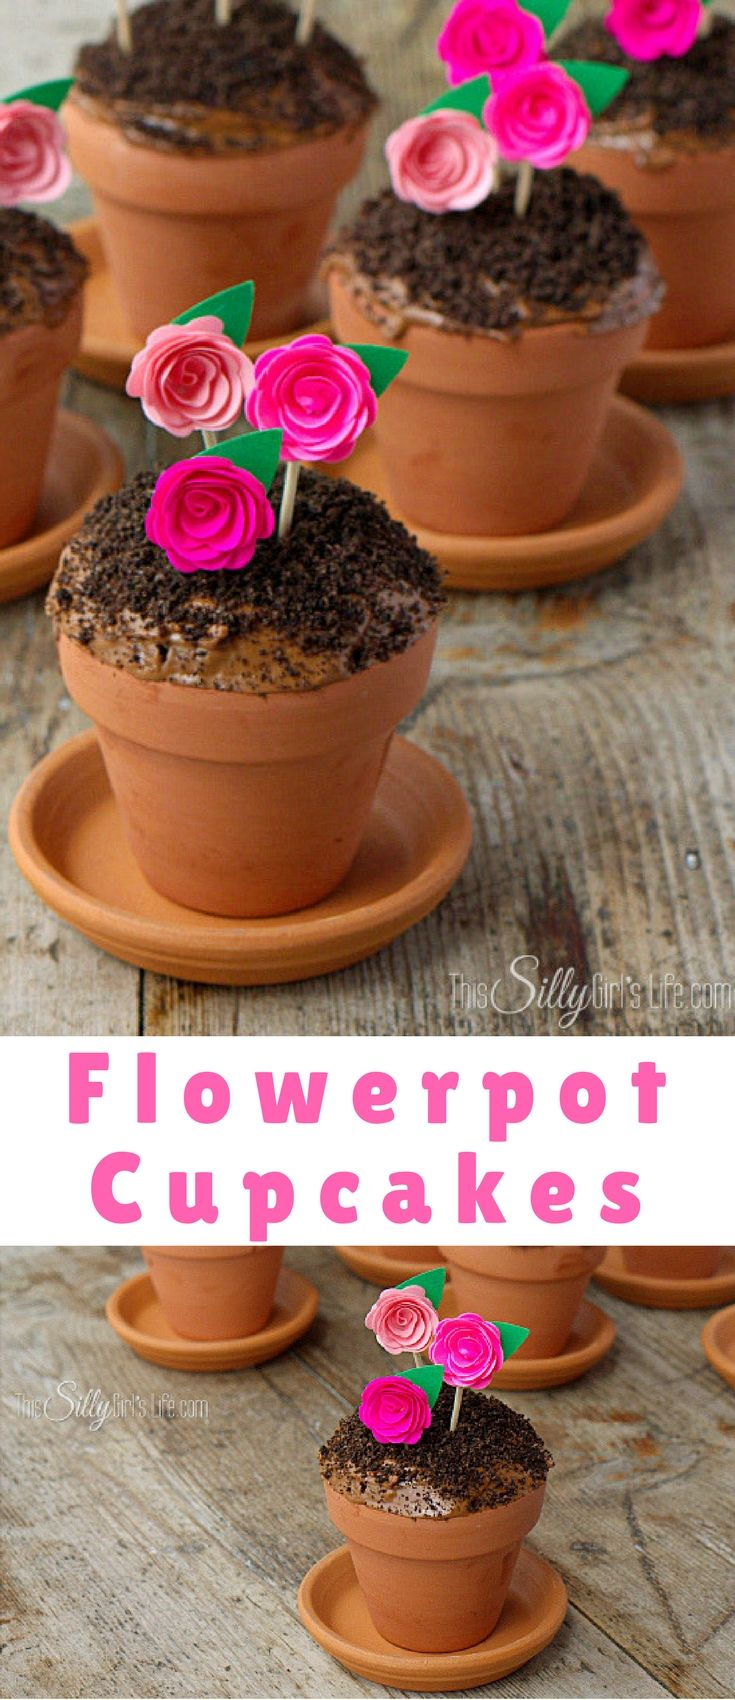 Flowerpot Cupcakes, chocolate devil's food cake baked in mini terracotta flower pots, topped with frosting, Oreo crumbs and pretty paper flowers to mimic flowerpots!